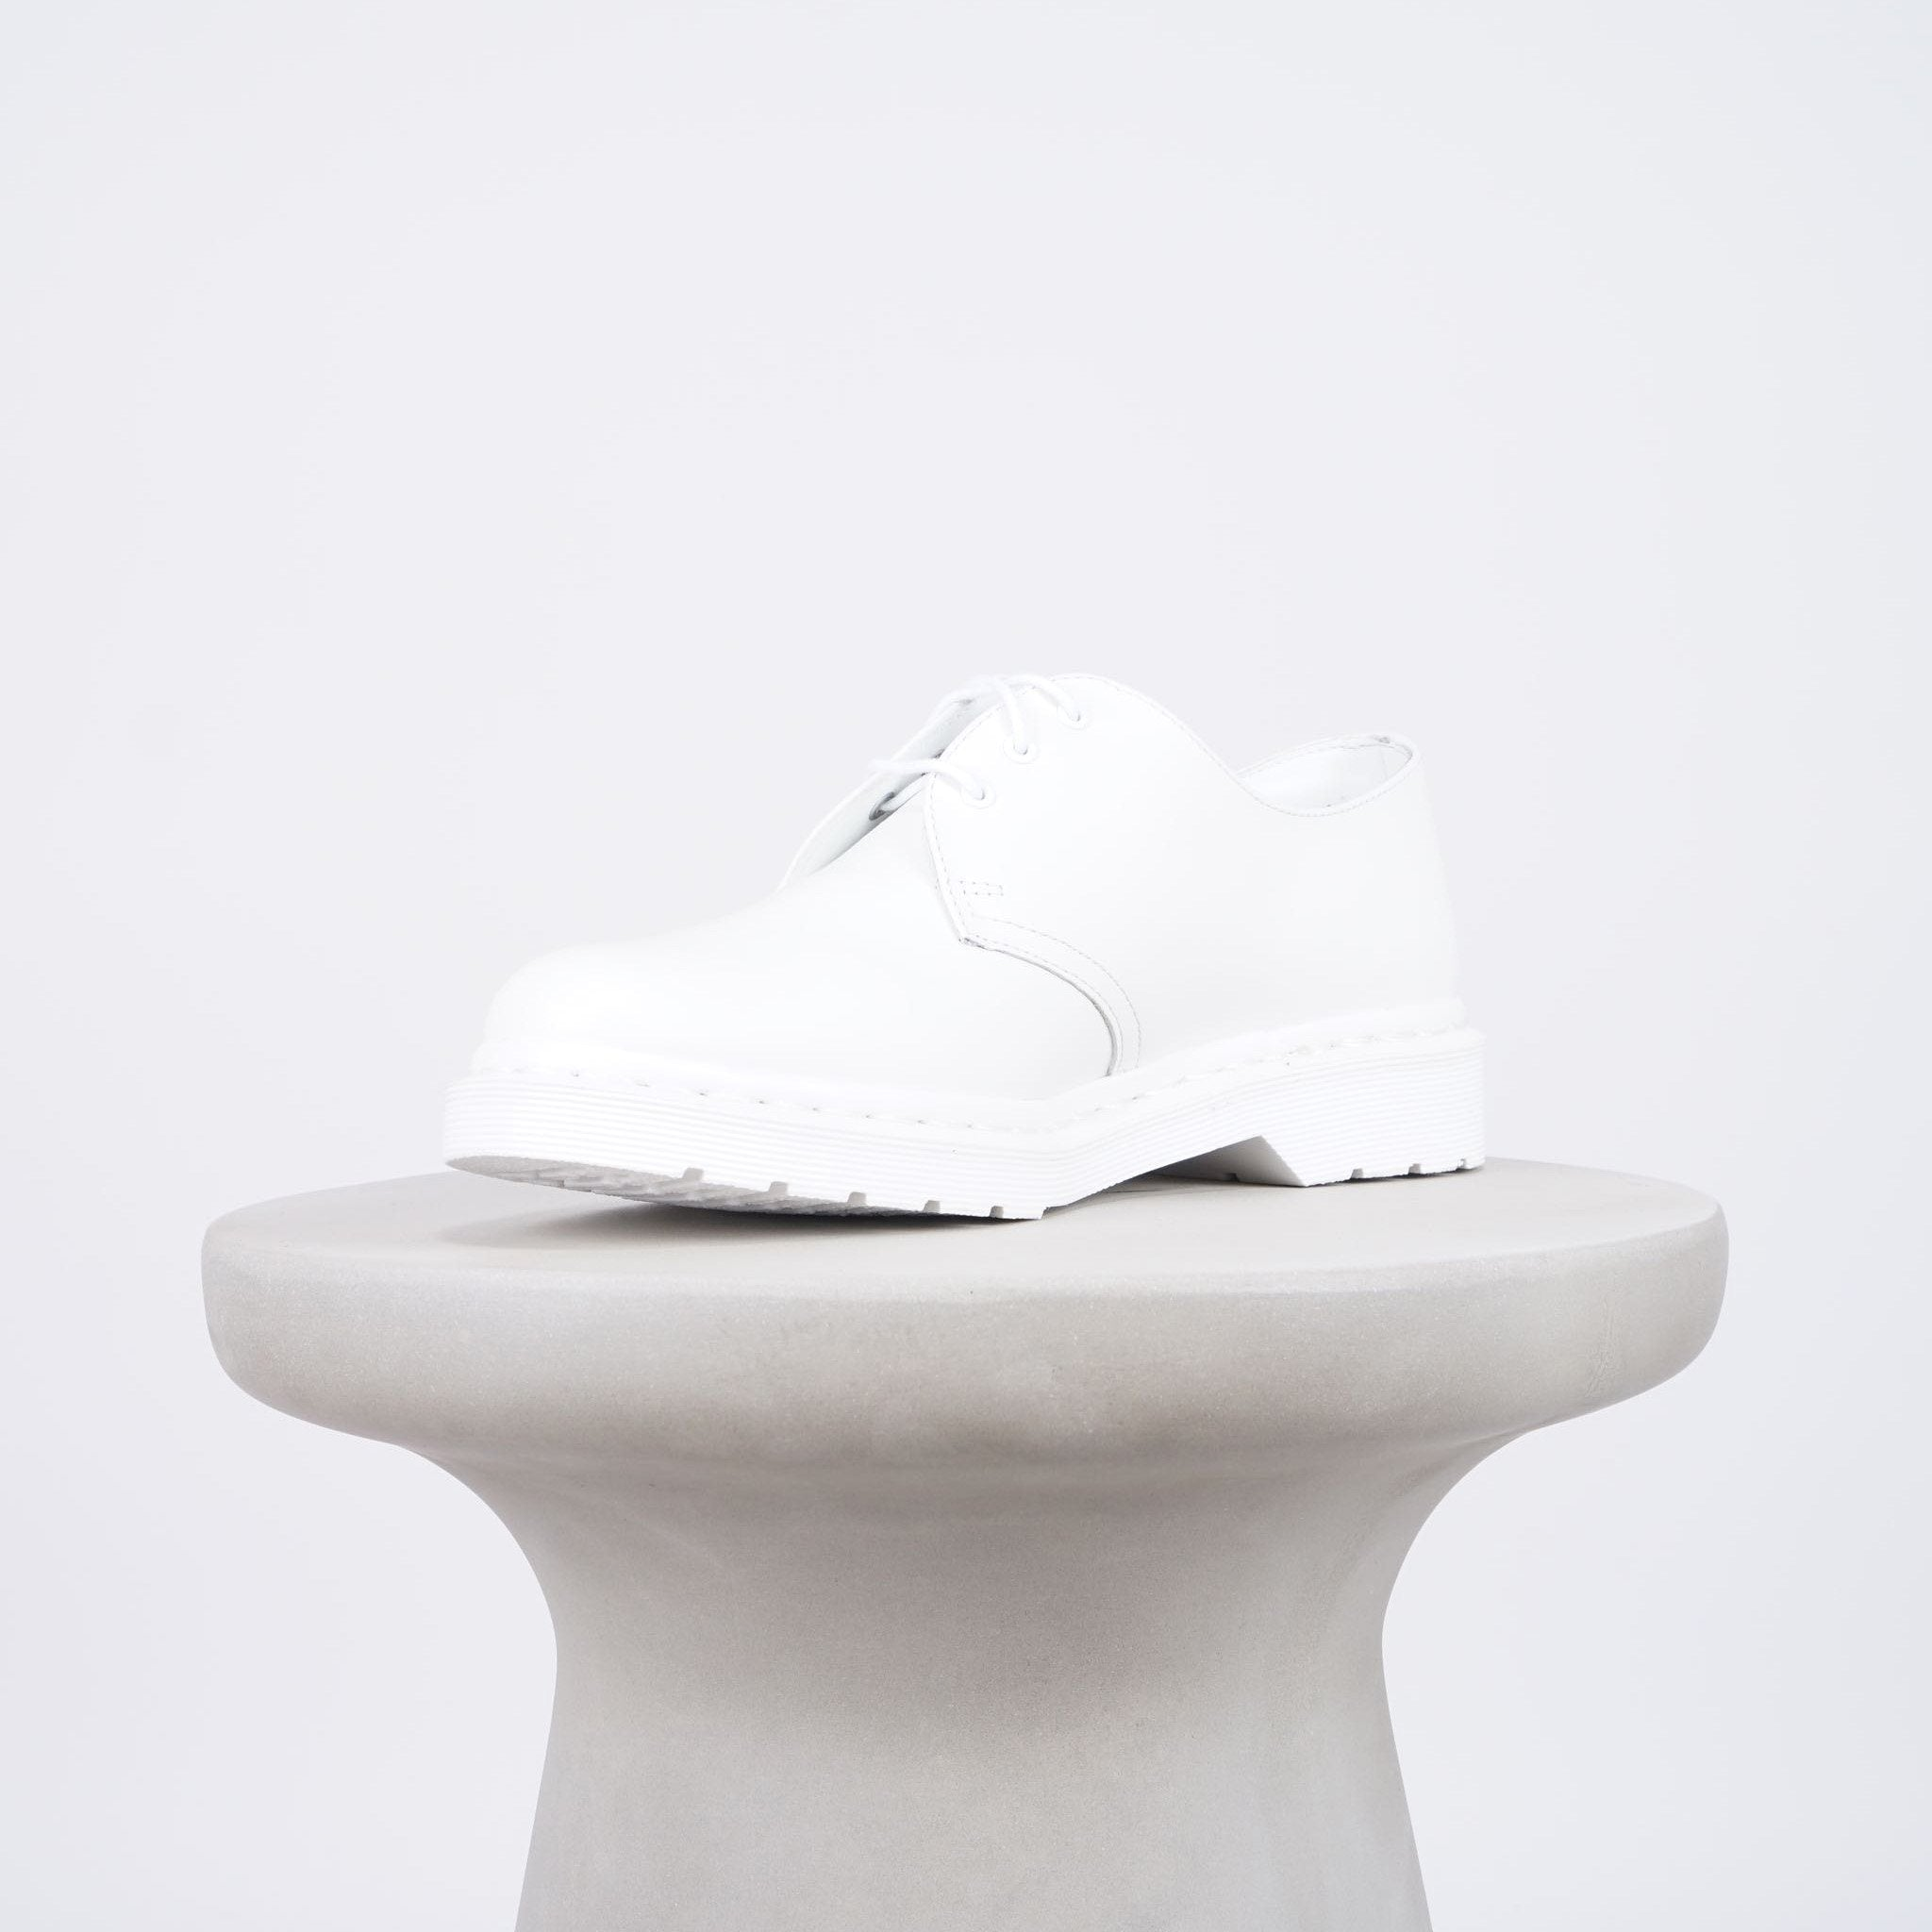 Dr. Martens 1461 shoes - Mono white